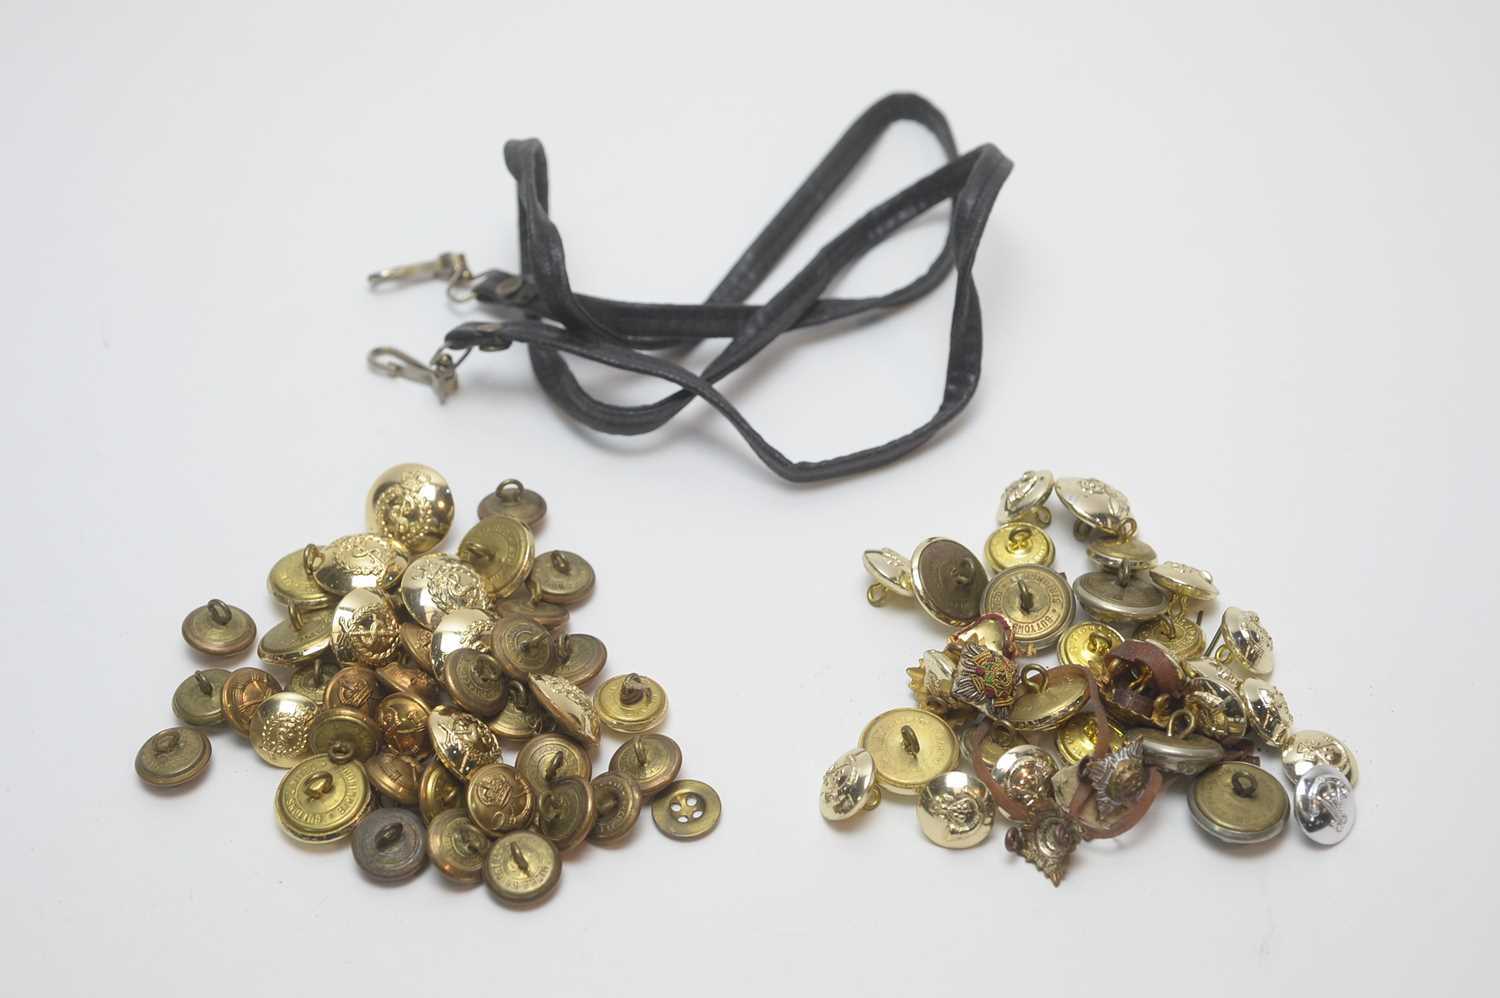 Lot 957-Collection of Regimental buttons